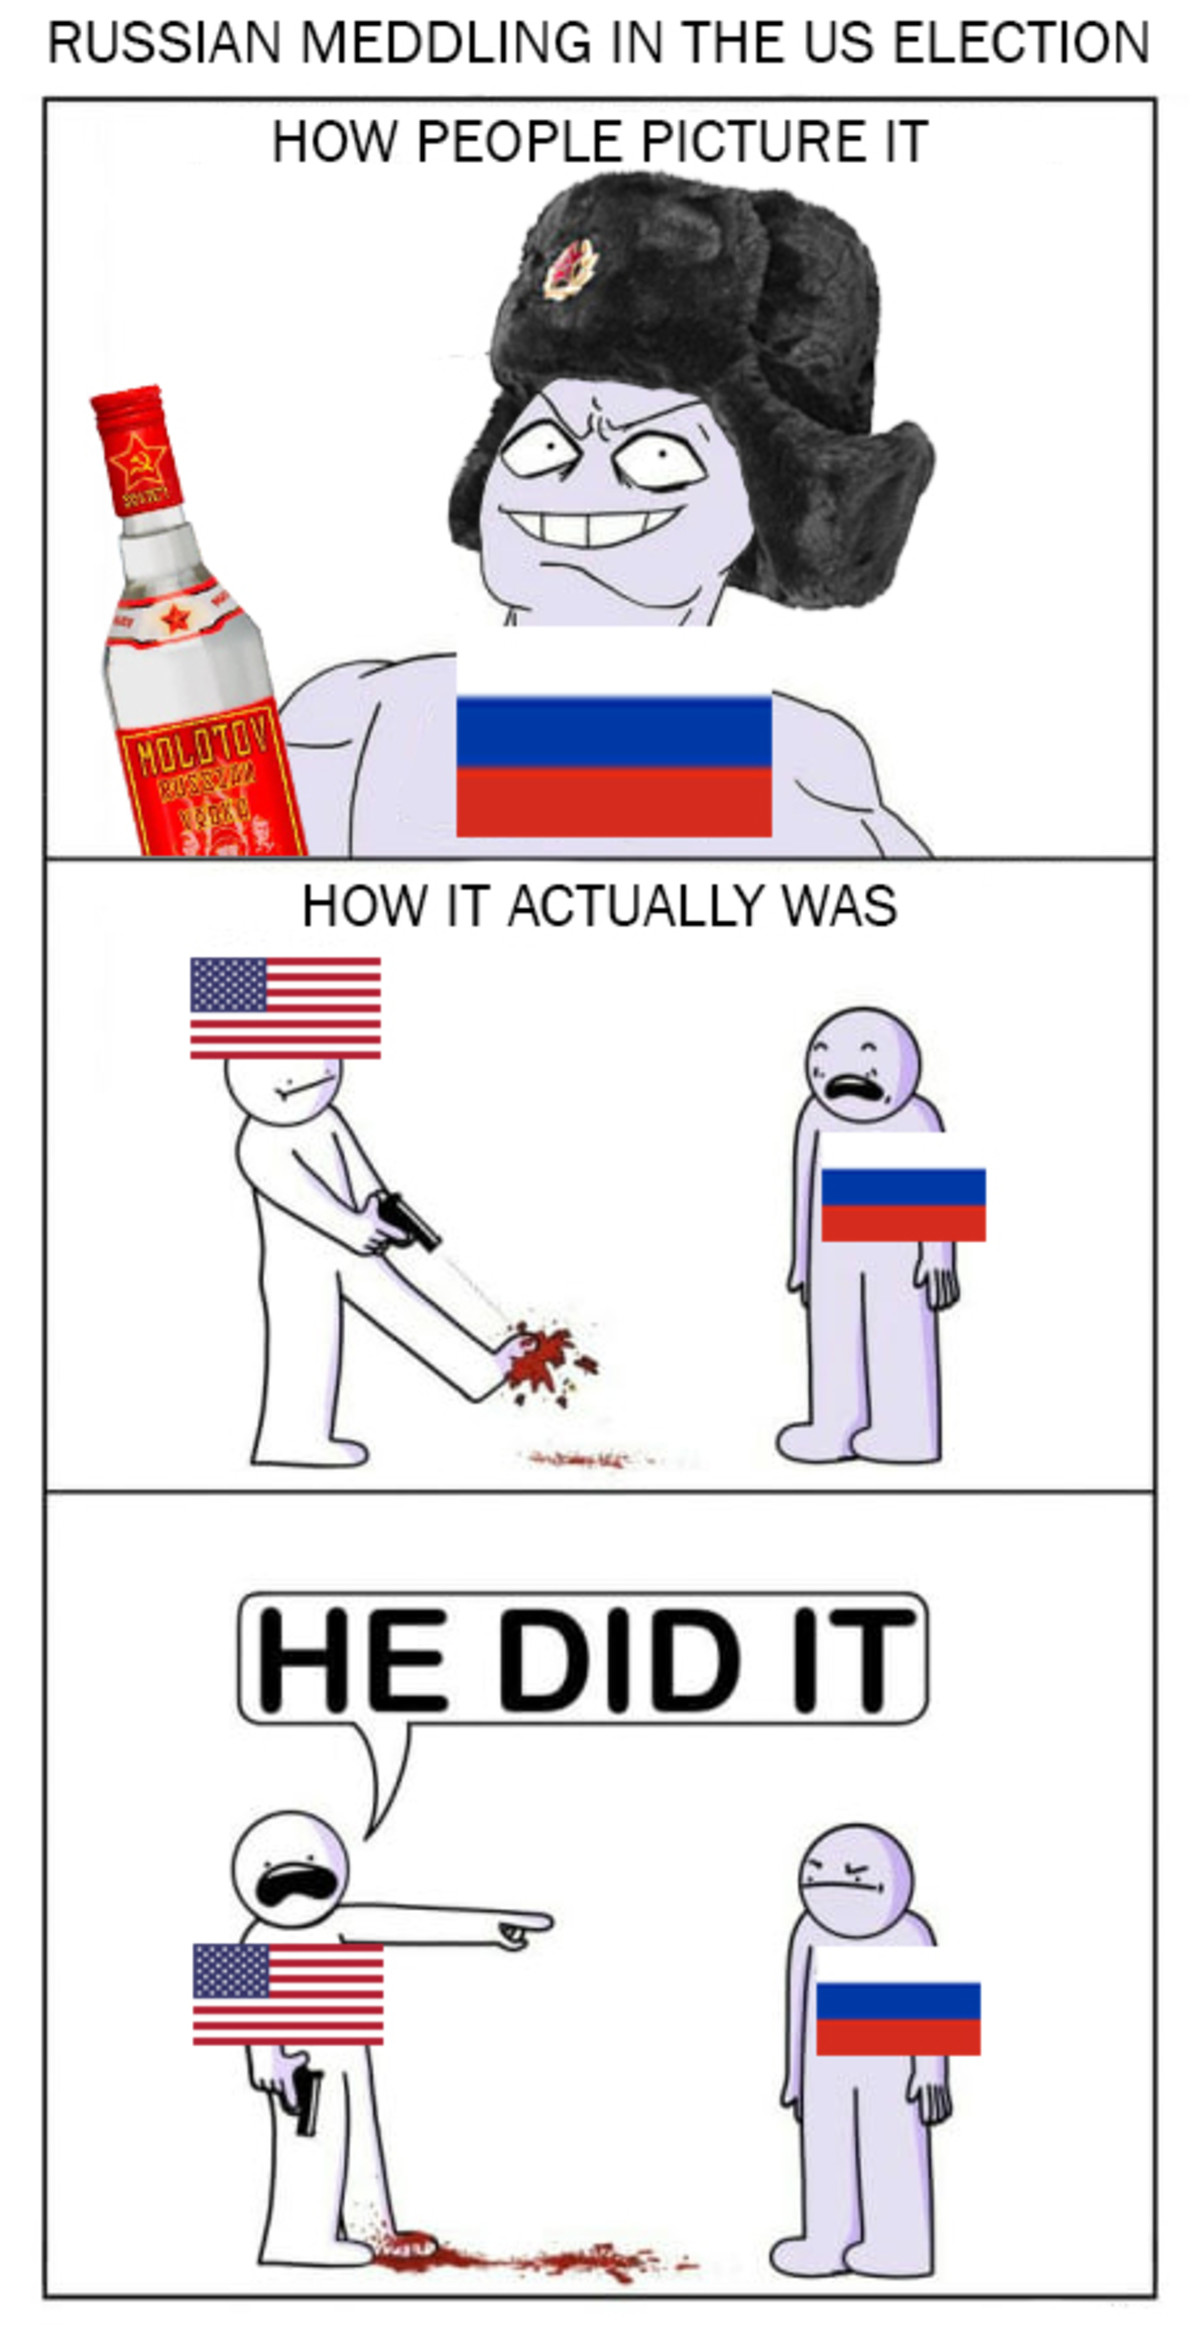 Still relevant. . RUSSIAN MEDDLING IN THE US ELECTION HOW PEOPLE PICTURE IT. I'm not up to date with the hottest new revelations, but I think the Russia did meddle in US election by supporting the nuttiest supporters of every candidate t